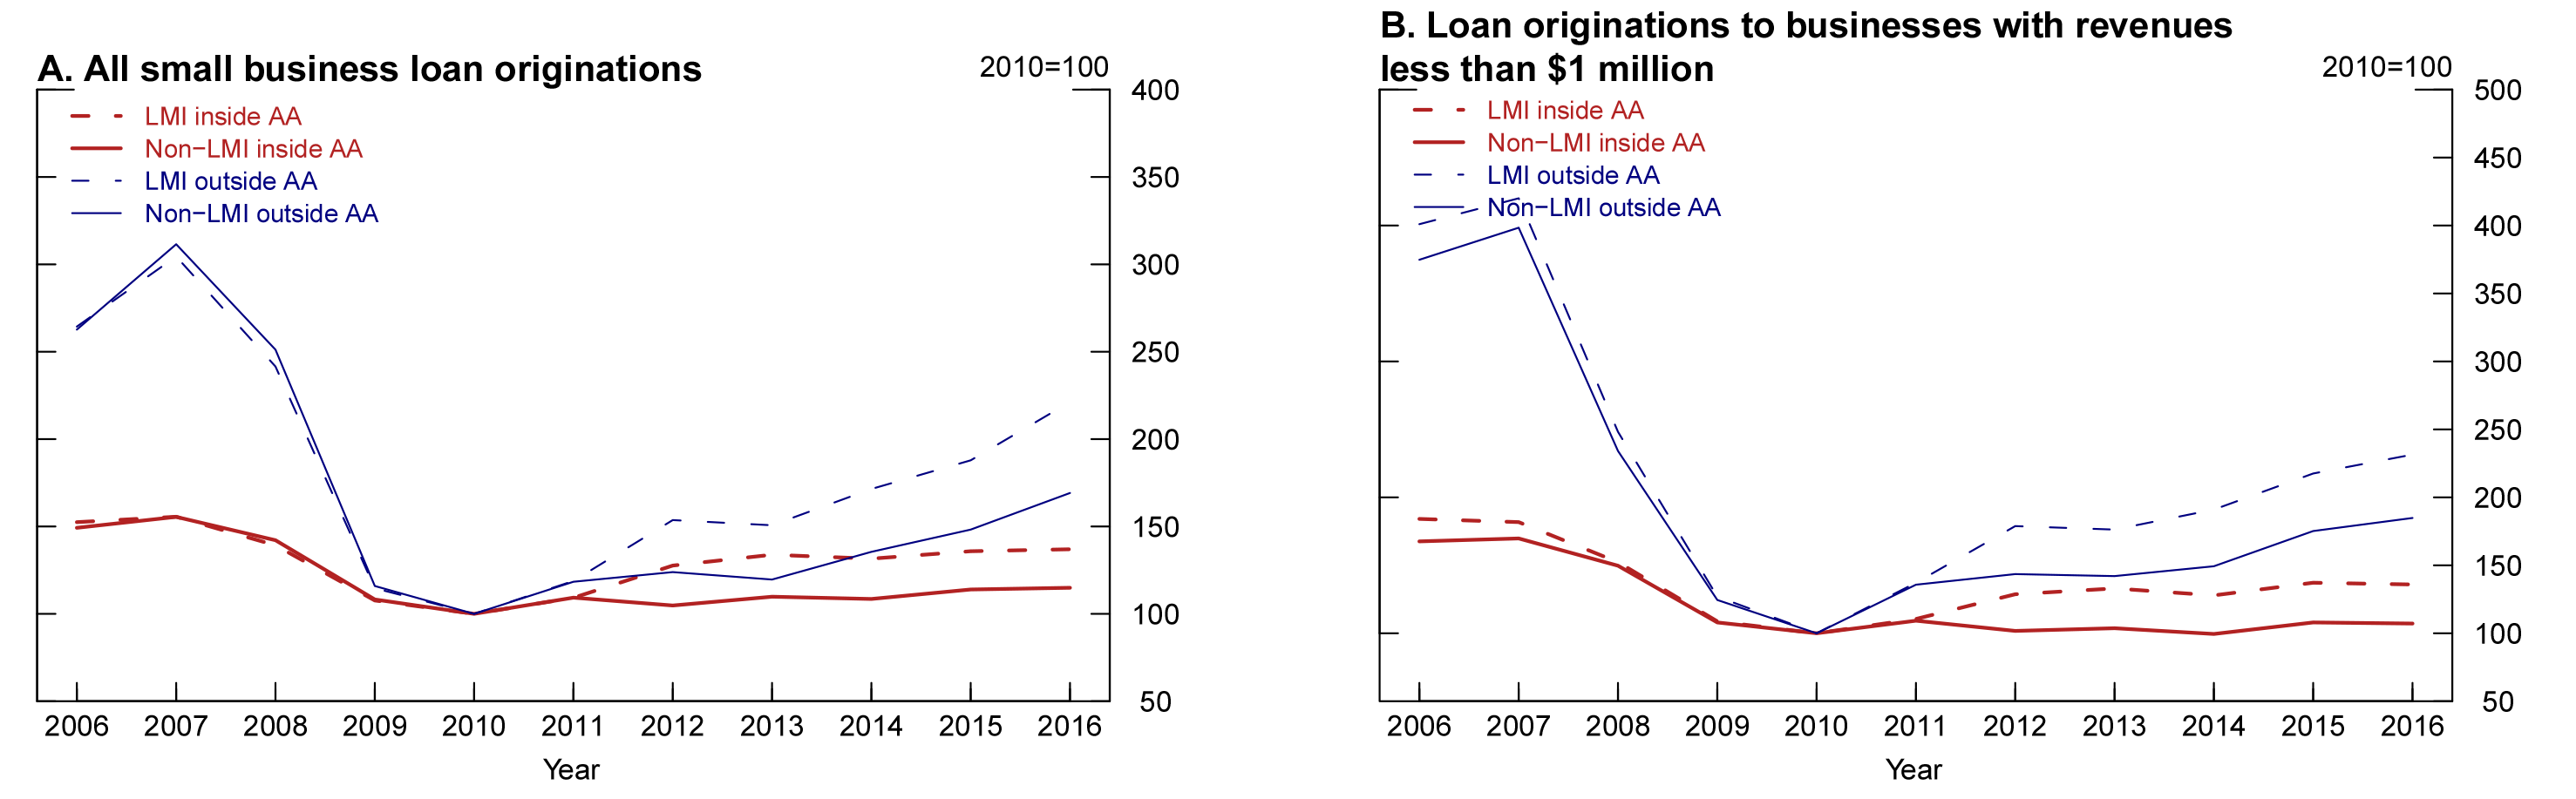 Figure 2. Small business loan originations by neighborhood income and assessment area status. See accessible link for data description.